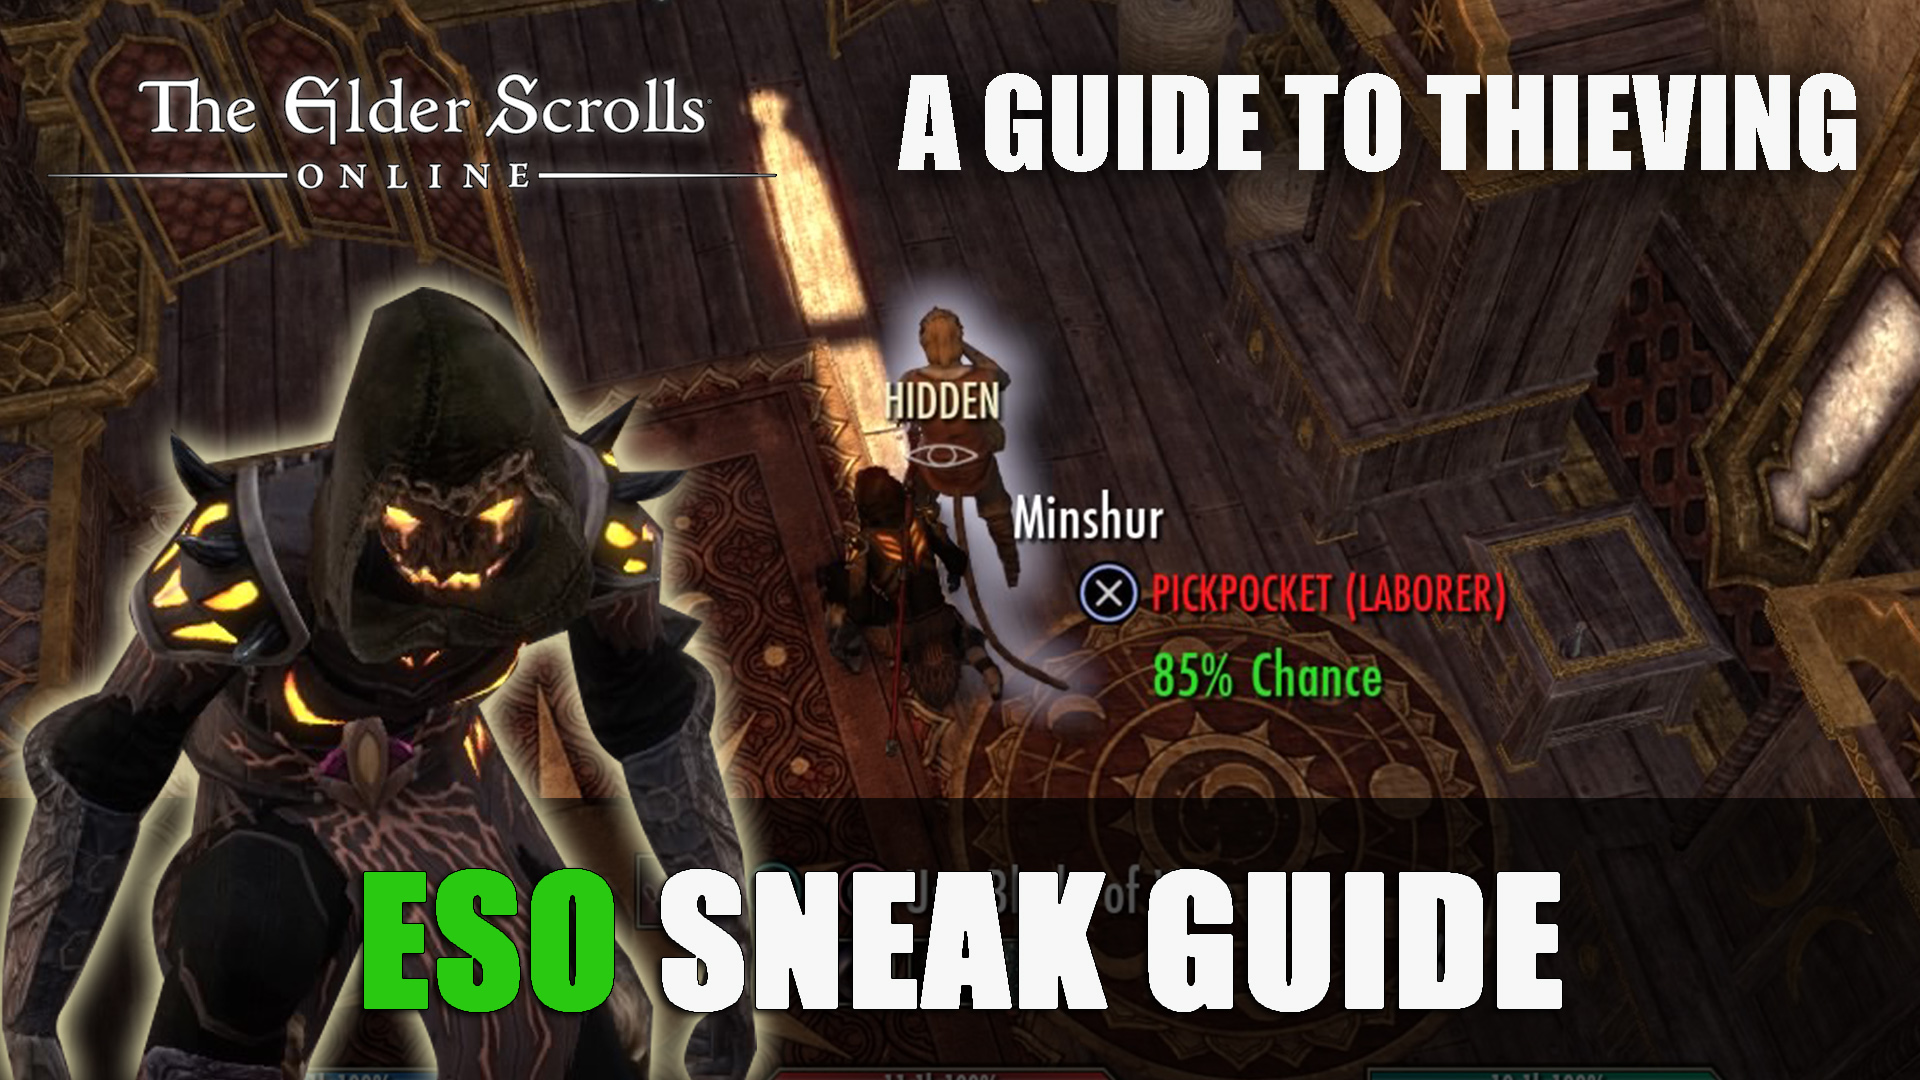 Runescape 99 thieving guide 2012 fast way to get 99 thieving.